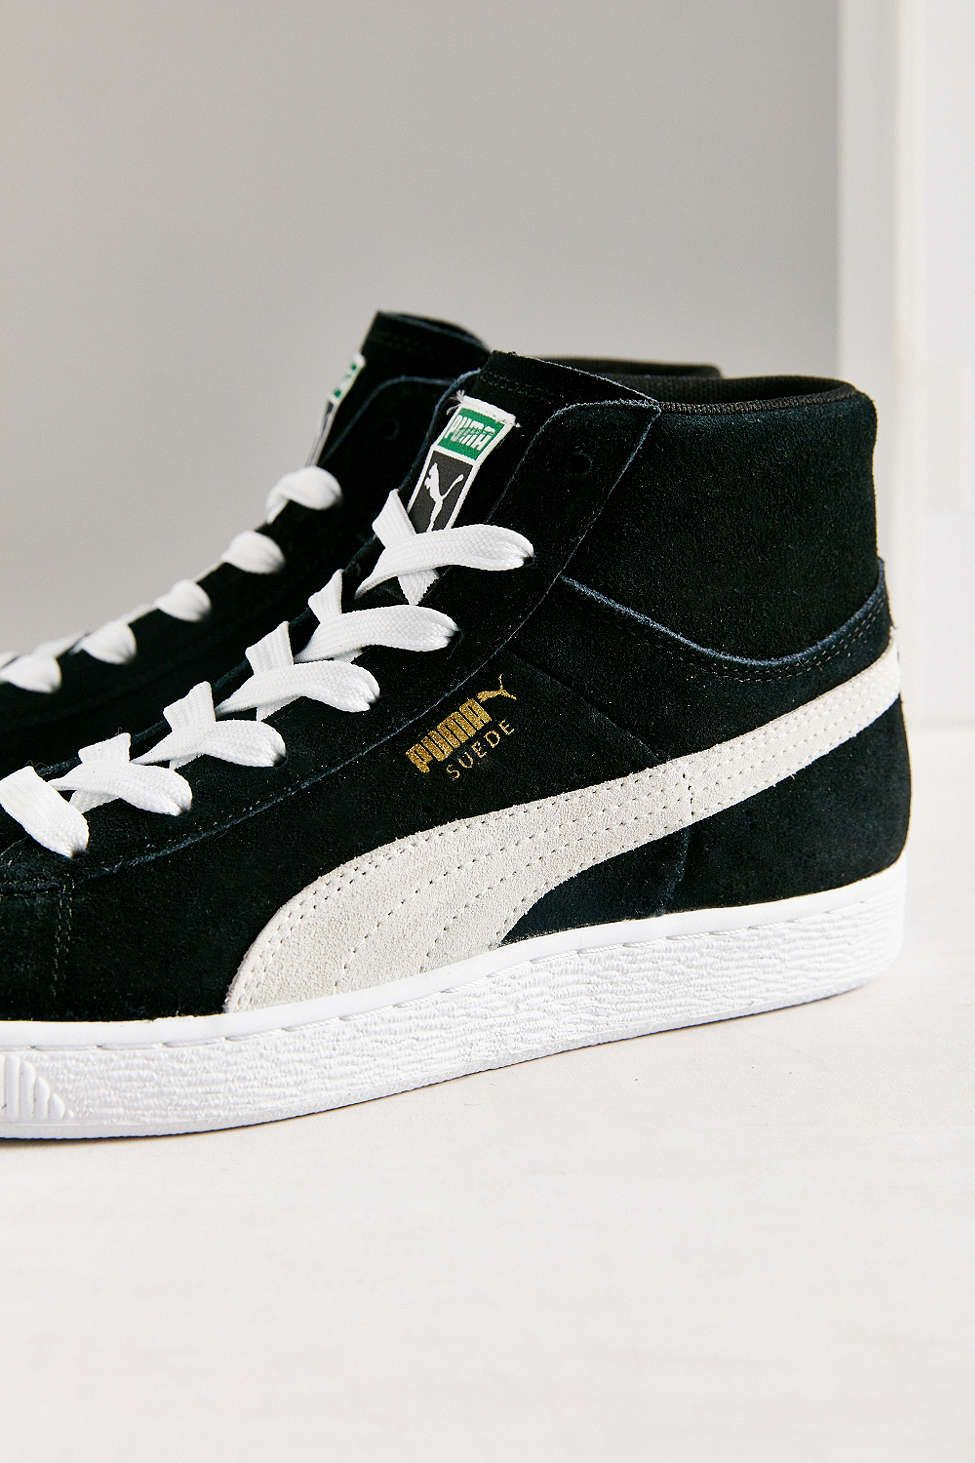 27ae8b44f78a Puma Suede Classic Mid Jr Sneaker - Urban Outfitters